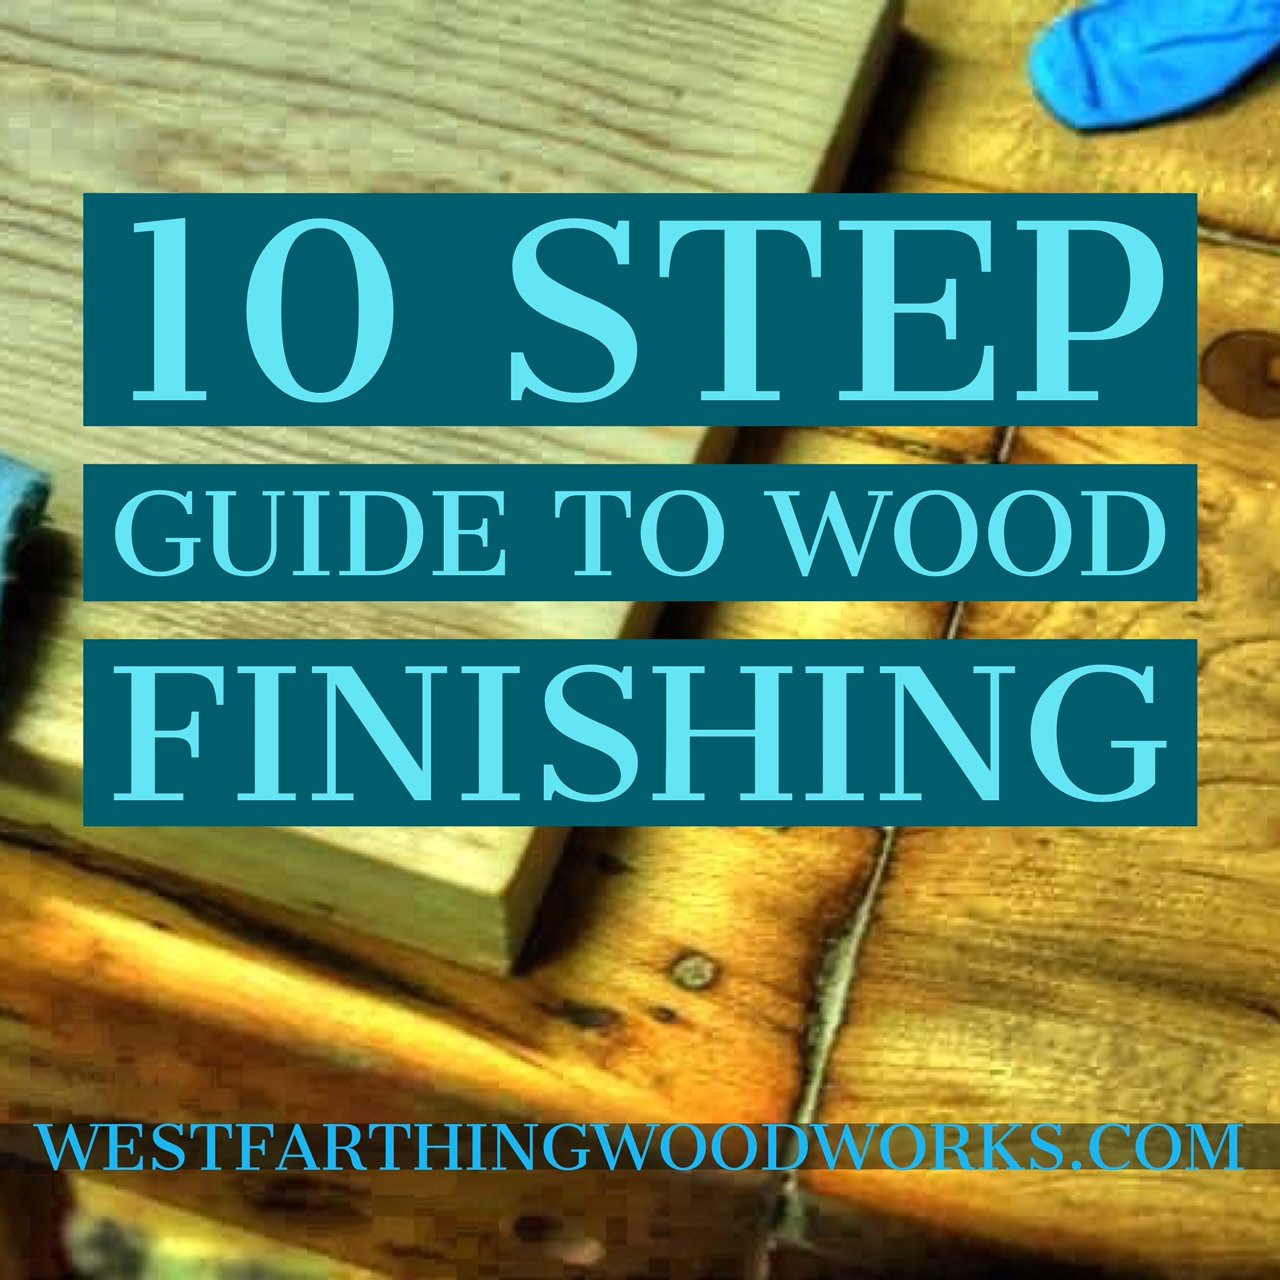 10 step guide to wood finishing westfarthing woodworks for Woodworking guide